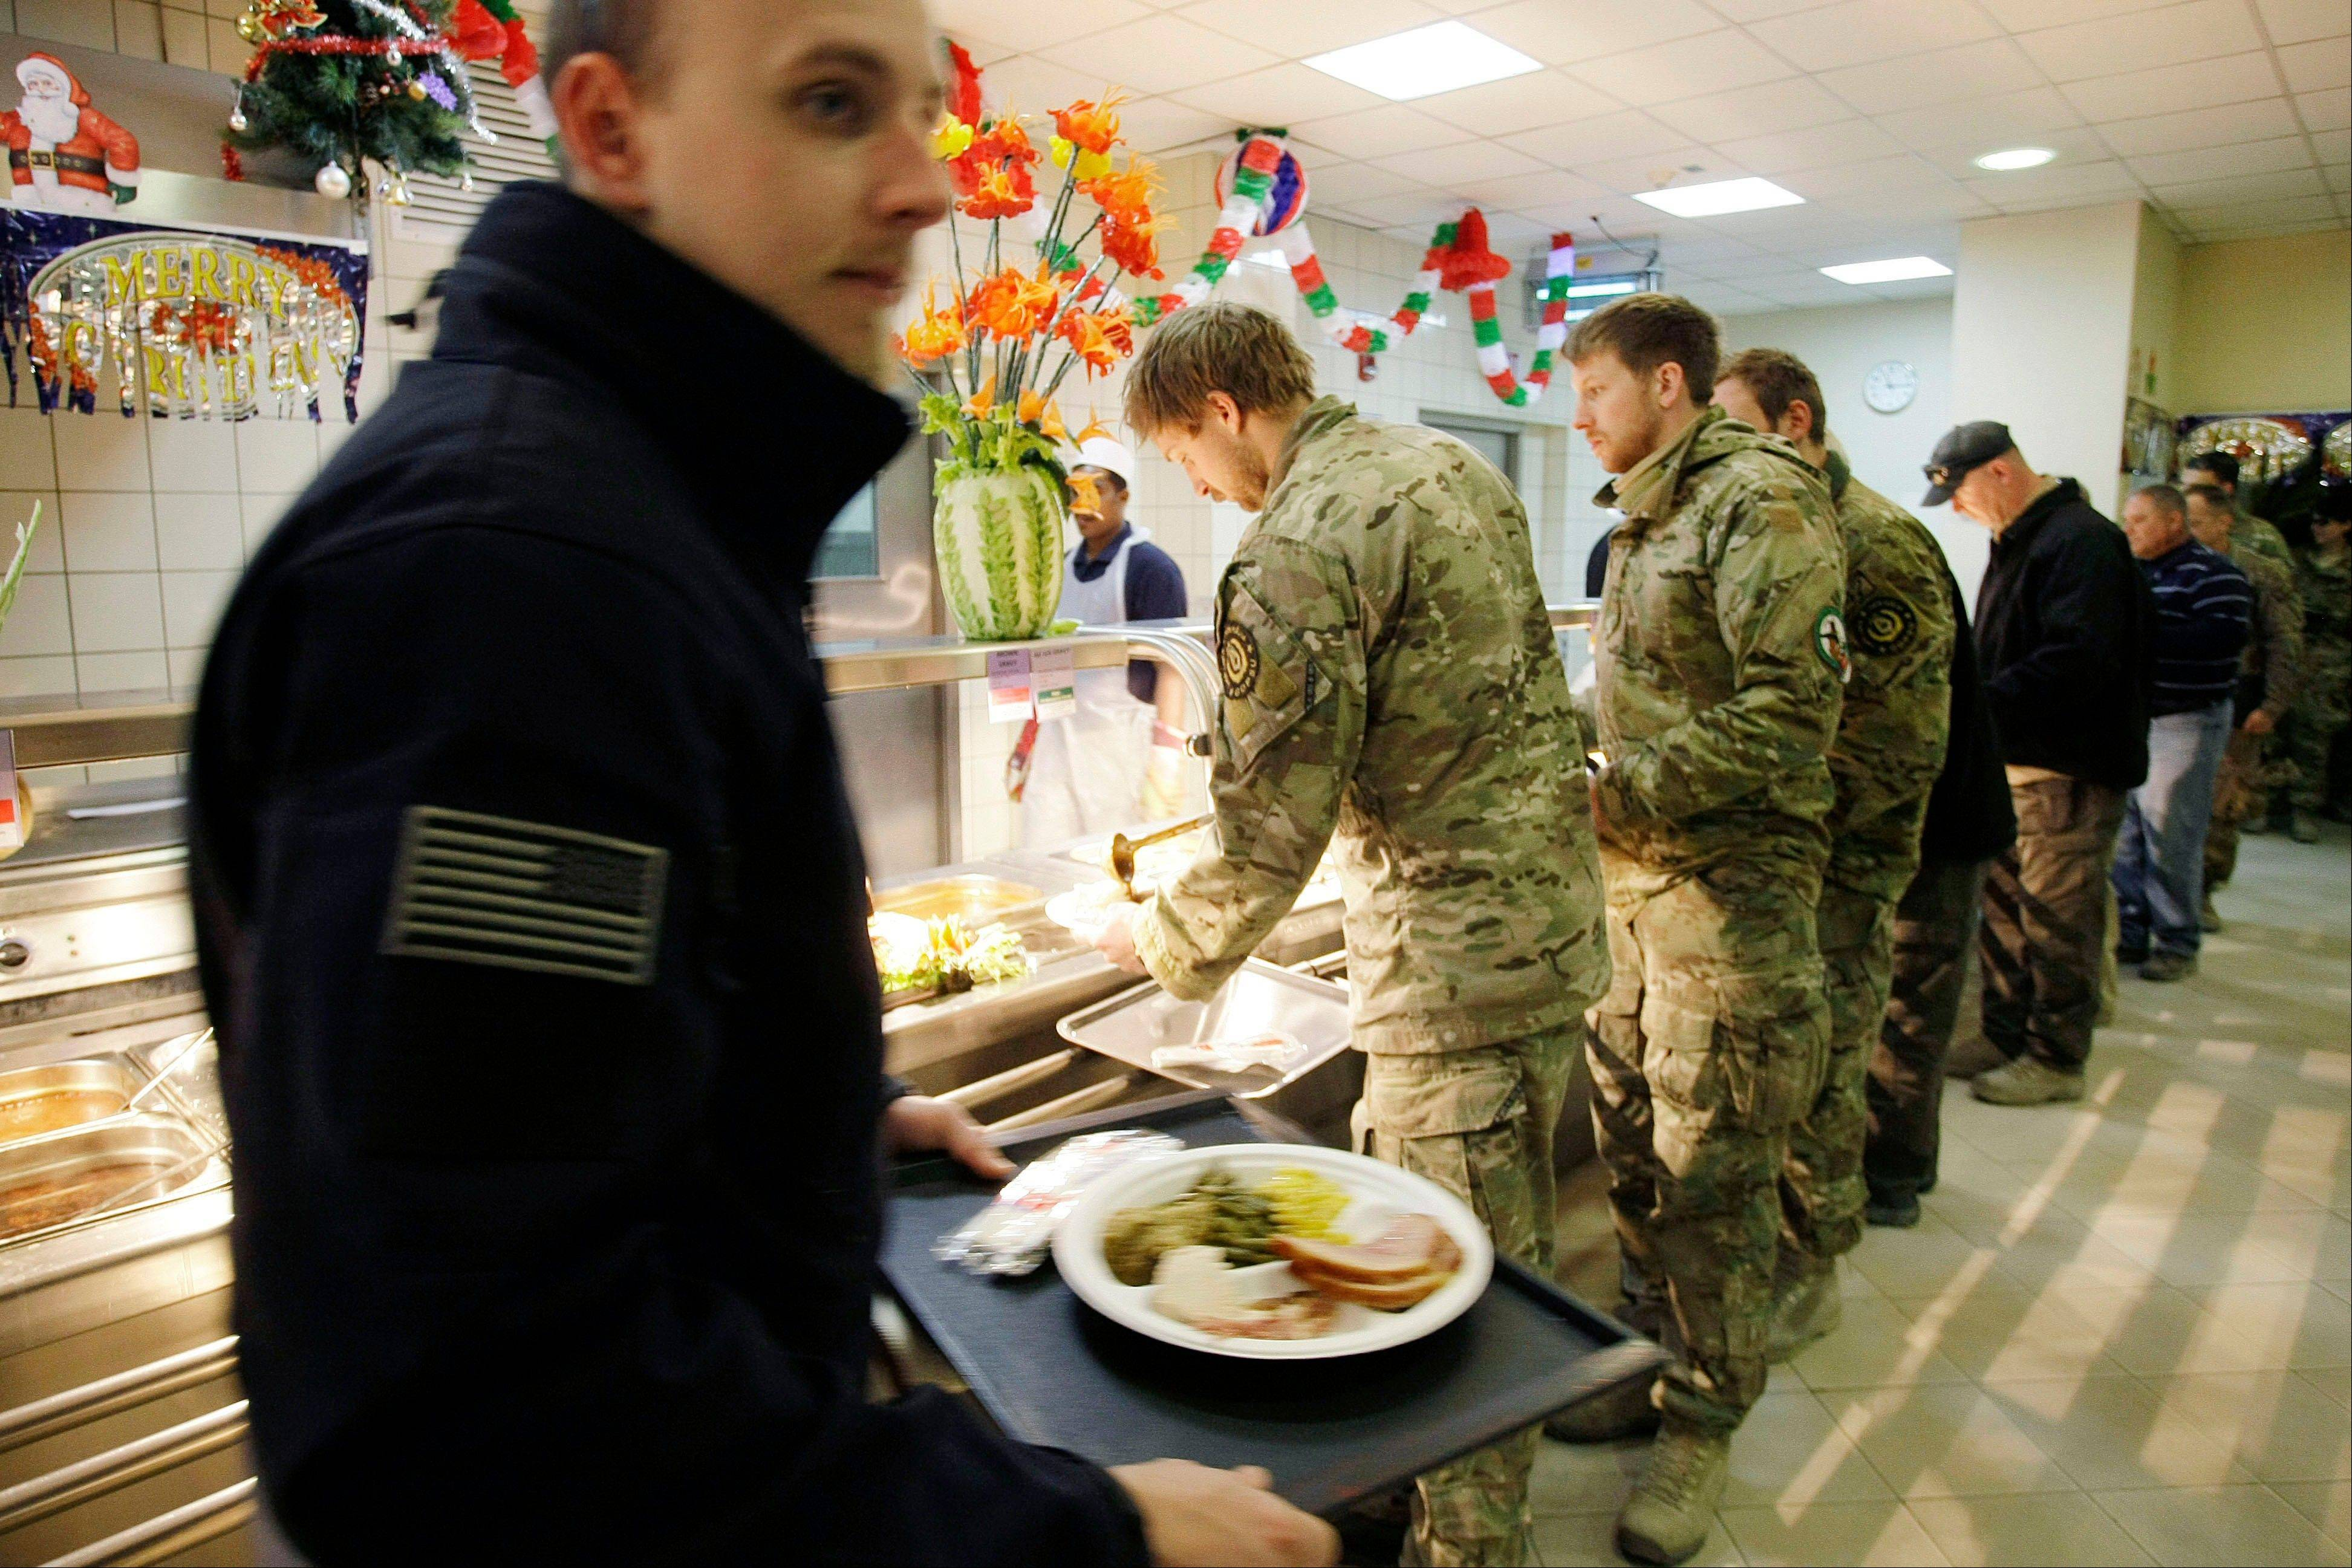 Soldiers and service members with the NATO-led International Security Assistance Force (ISAF) wait to be served Christmas dinner at a dining facility at the U.S.-led coalition base in Kabul, Afghanistan, Tuesday, Dec. 25, 2012.